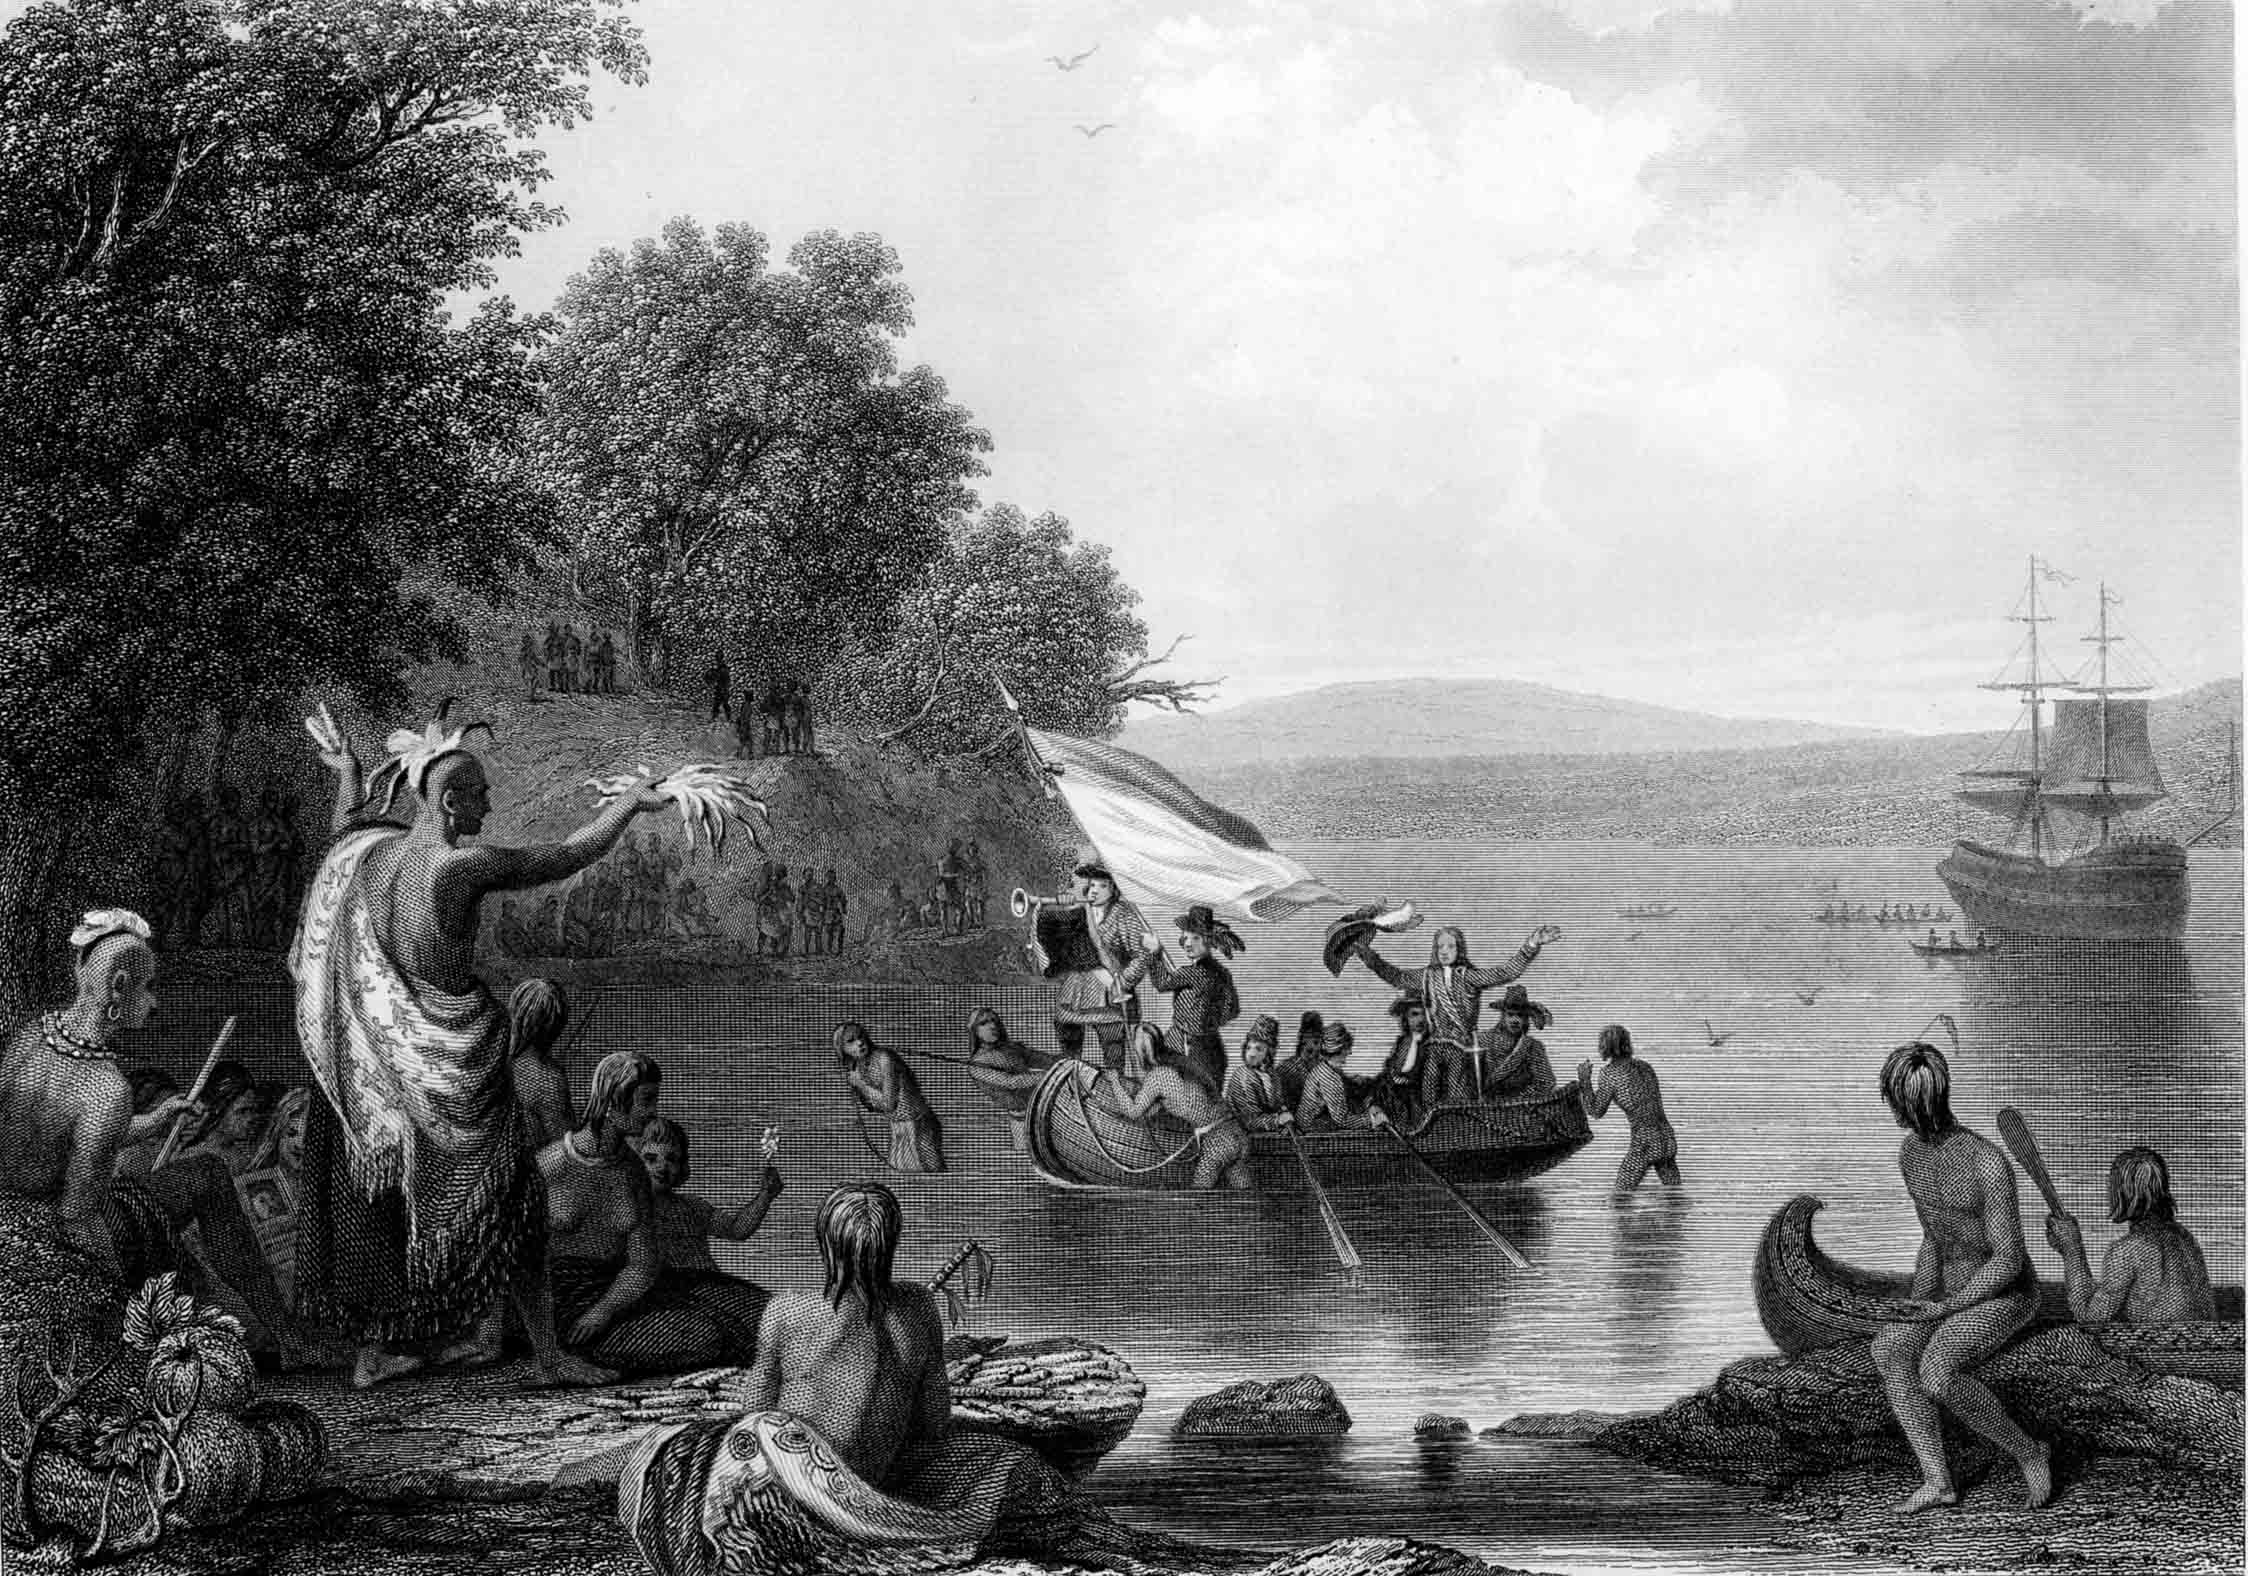 The Landing of Henrick Hudson, based on a painting by Robert Weir, published by Martin, Johnson & Co., New York, 1857. ( Gilder Lehrman Collection )